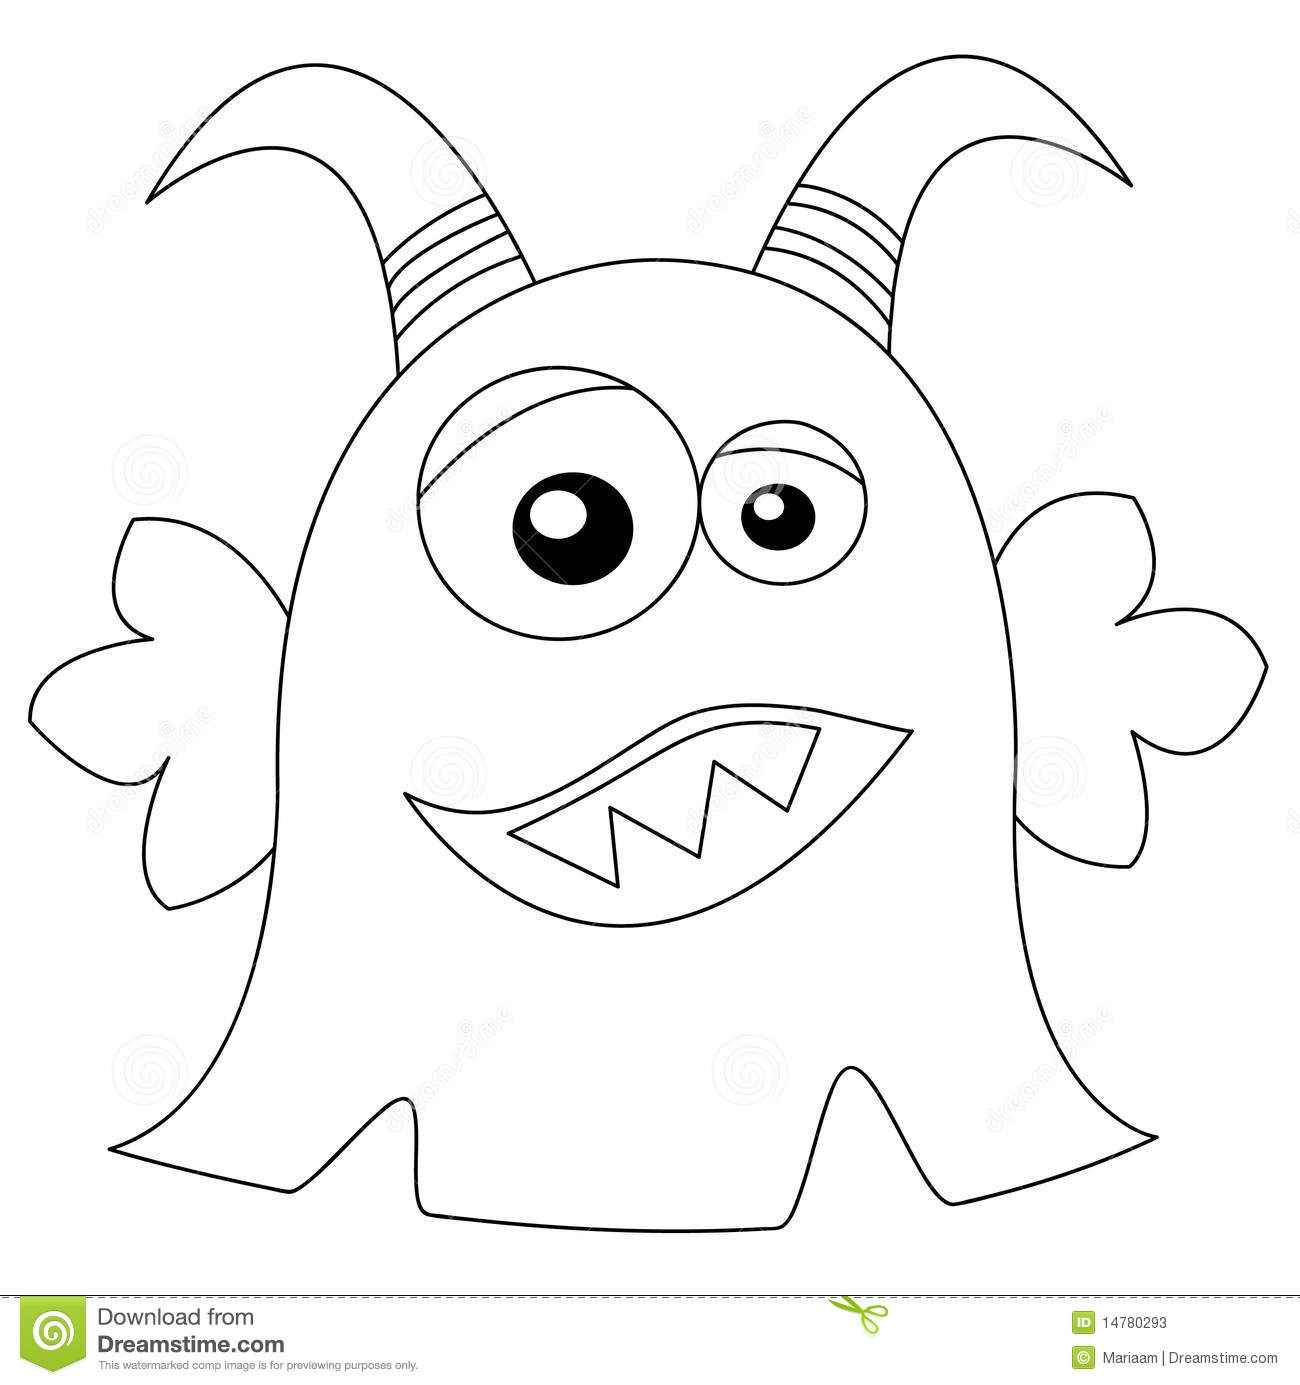 Cute monster in black white stock illustration for Mosnter template